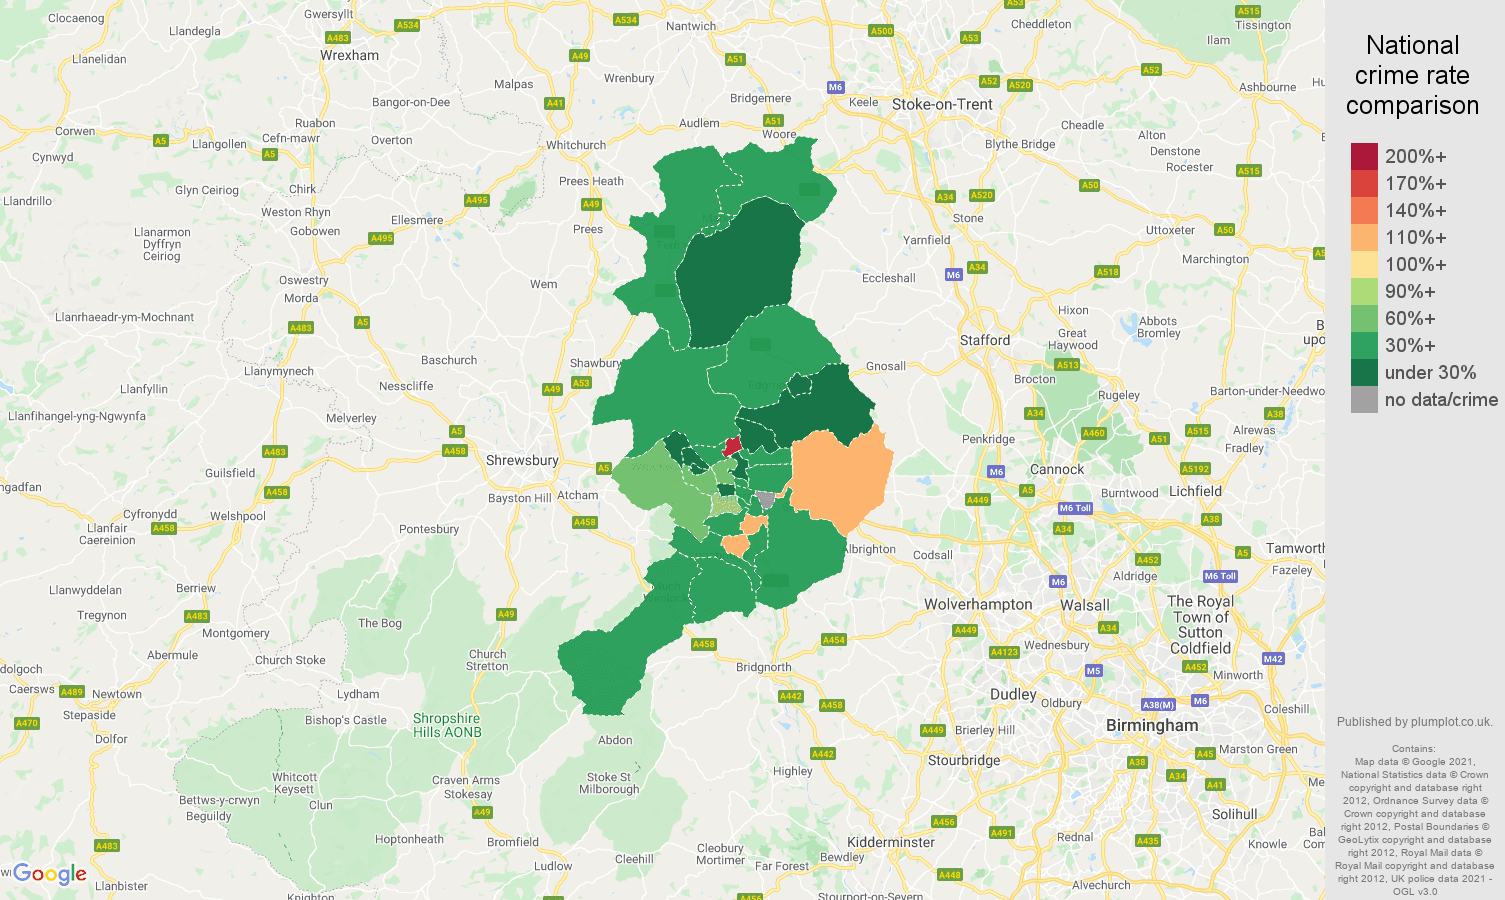 Telford vehicle crime rate comparison map